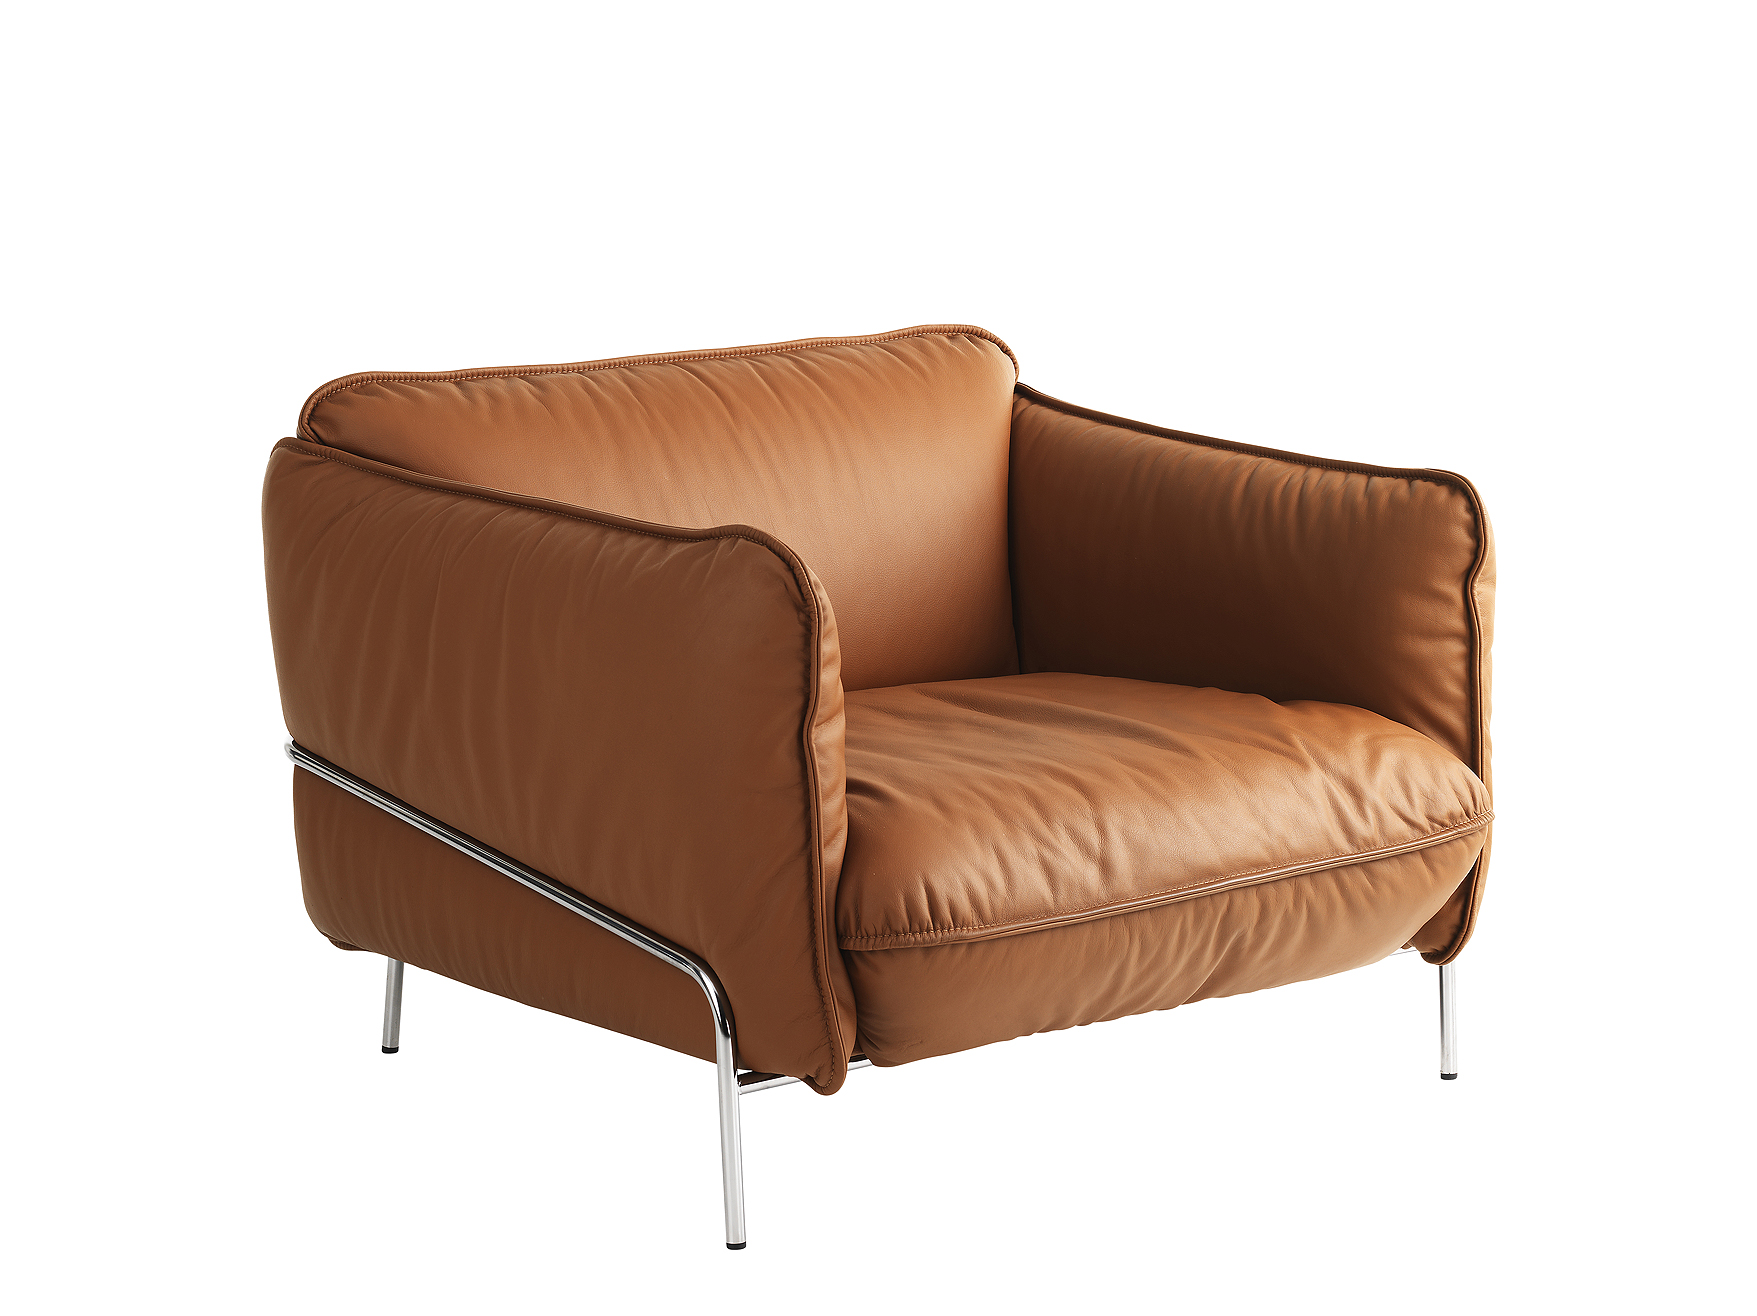 Continental Chair - Swedese